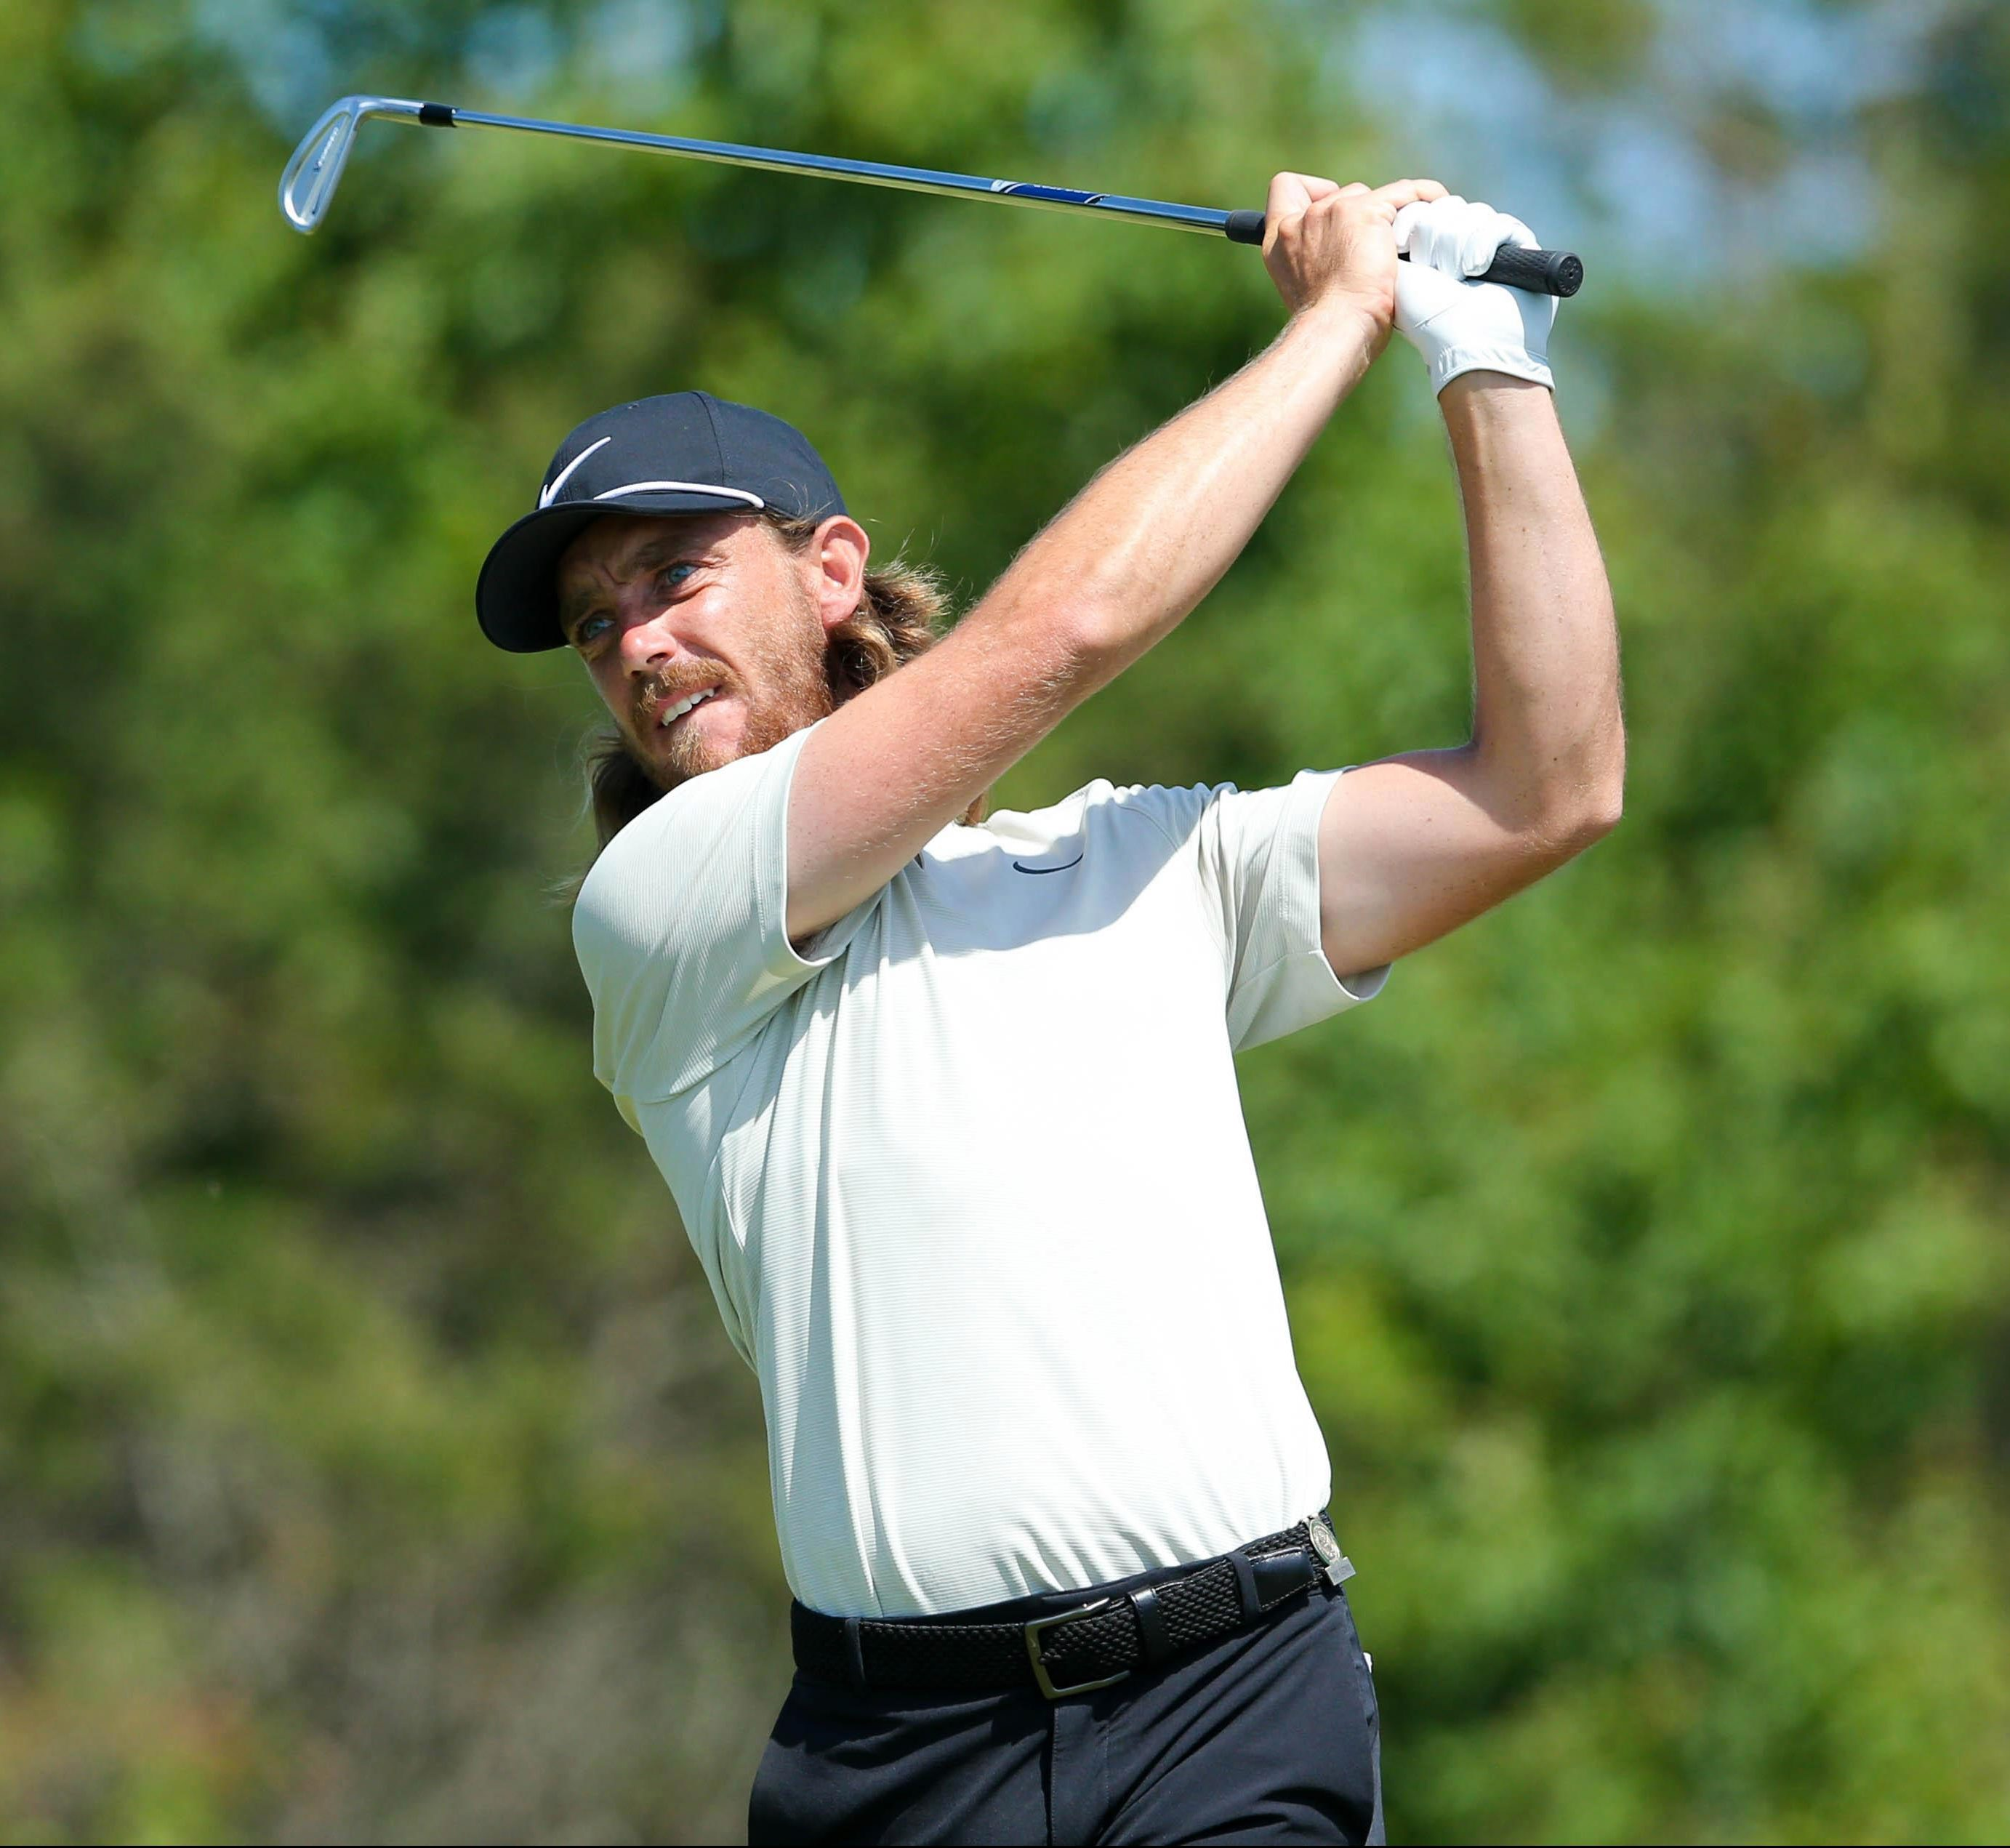 Southport sensation Tommy Fleetwood was in the form of his life in the US Open